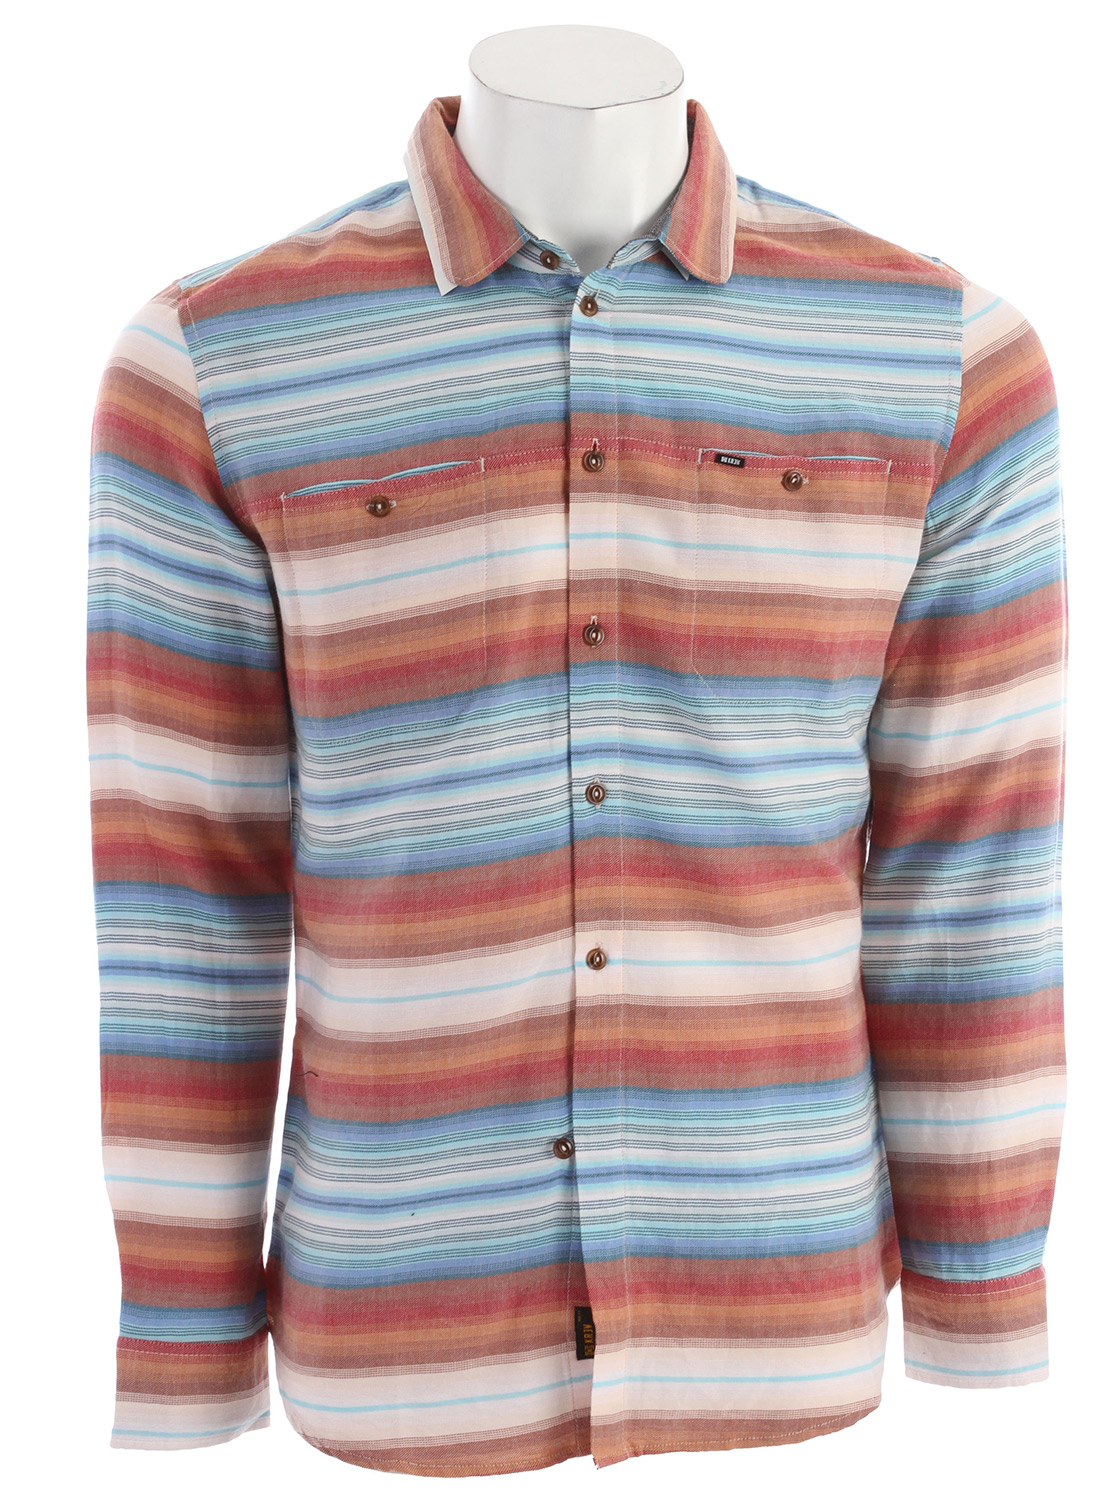 Key Features of the KR3W Dreamer L/S Shirt: 100% cotton yarn dyed horizontal ombre stripe - $41.95